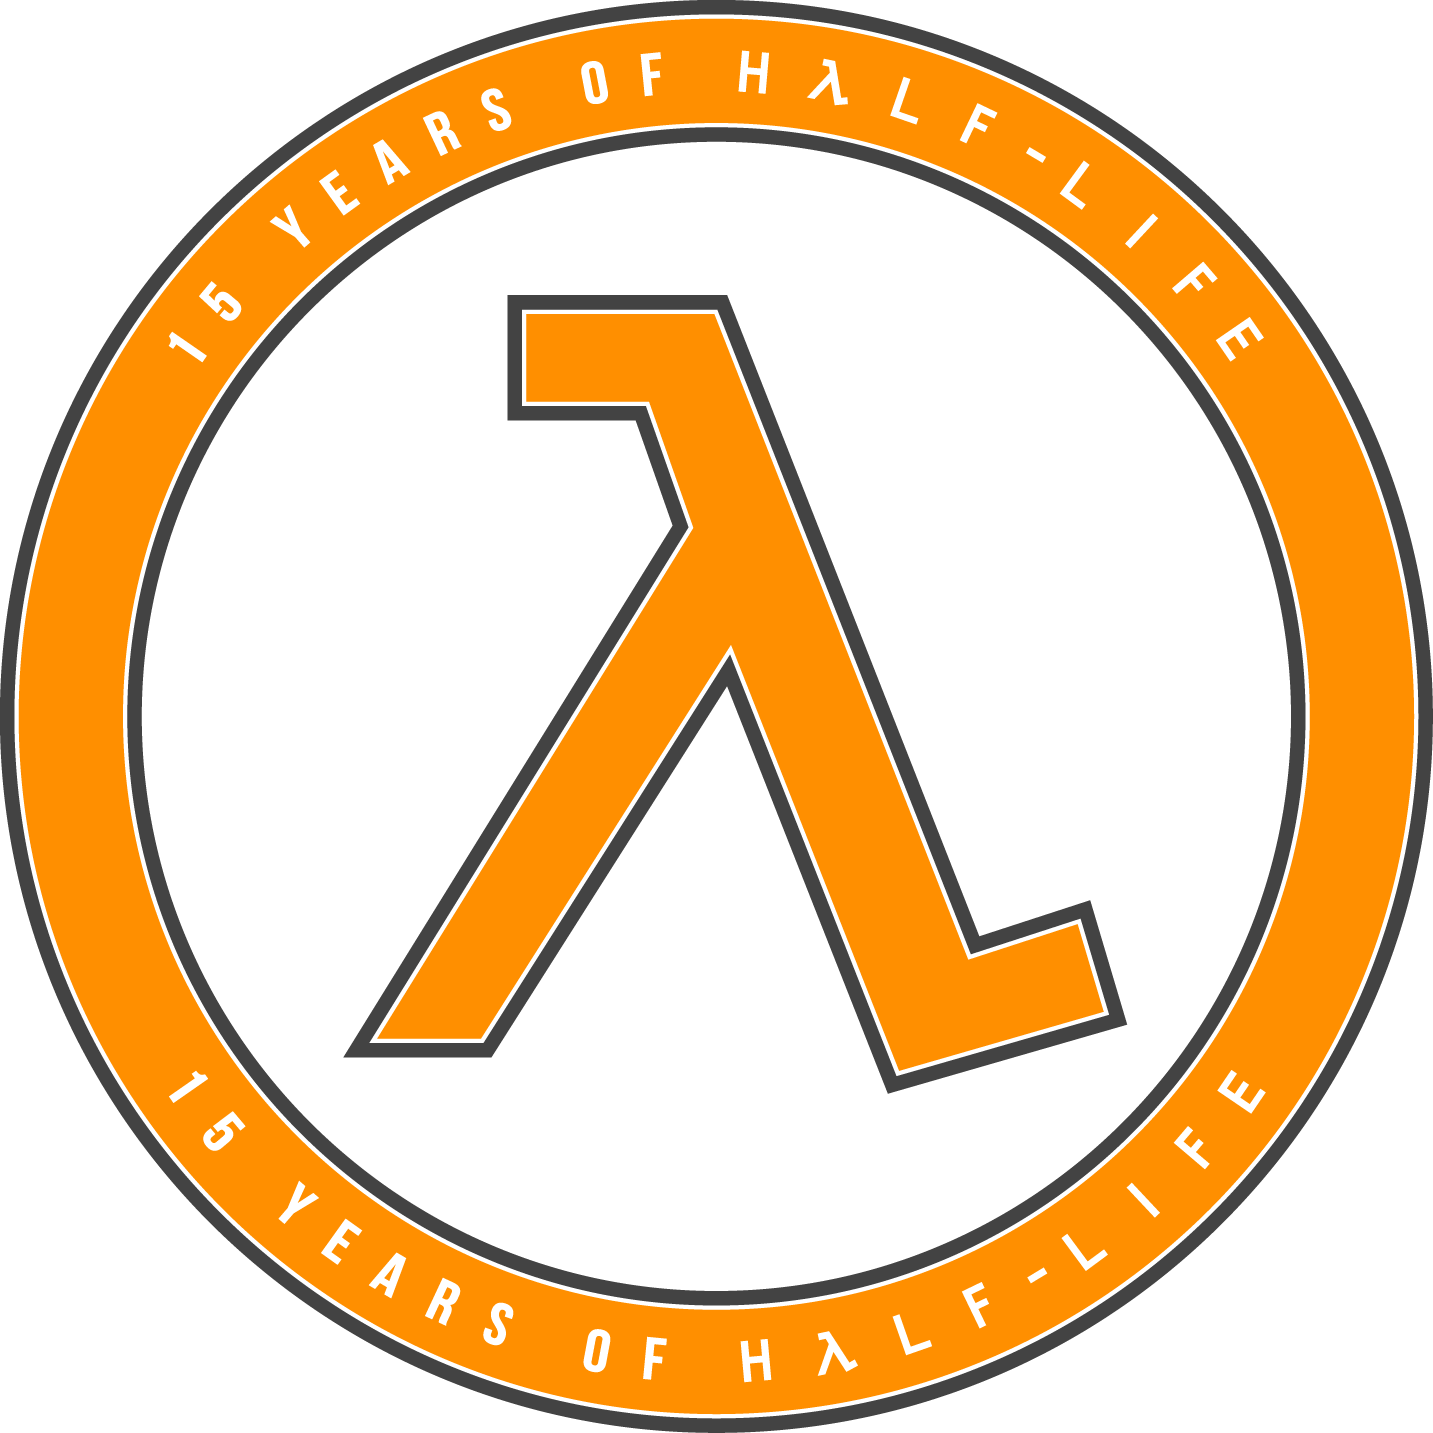 15 Years of Half-Life Logo - Orange